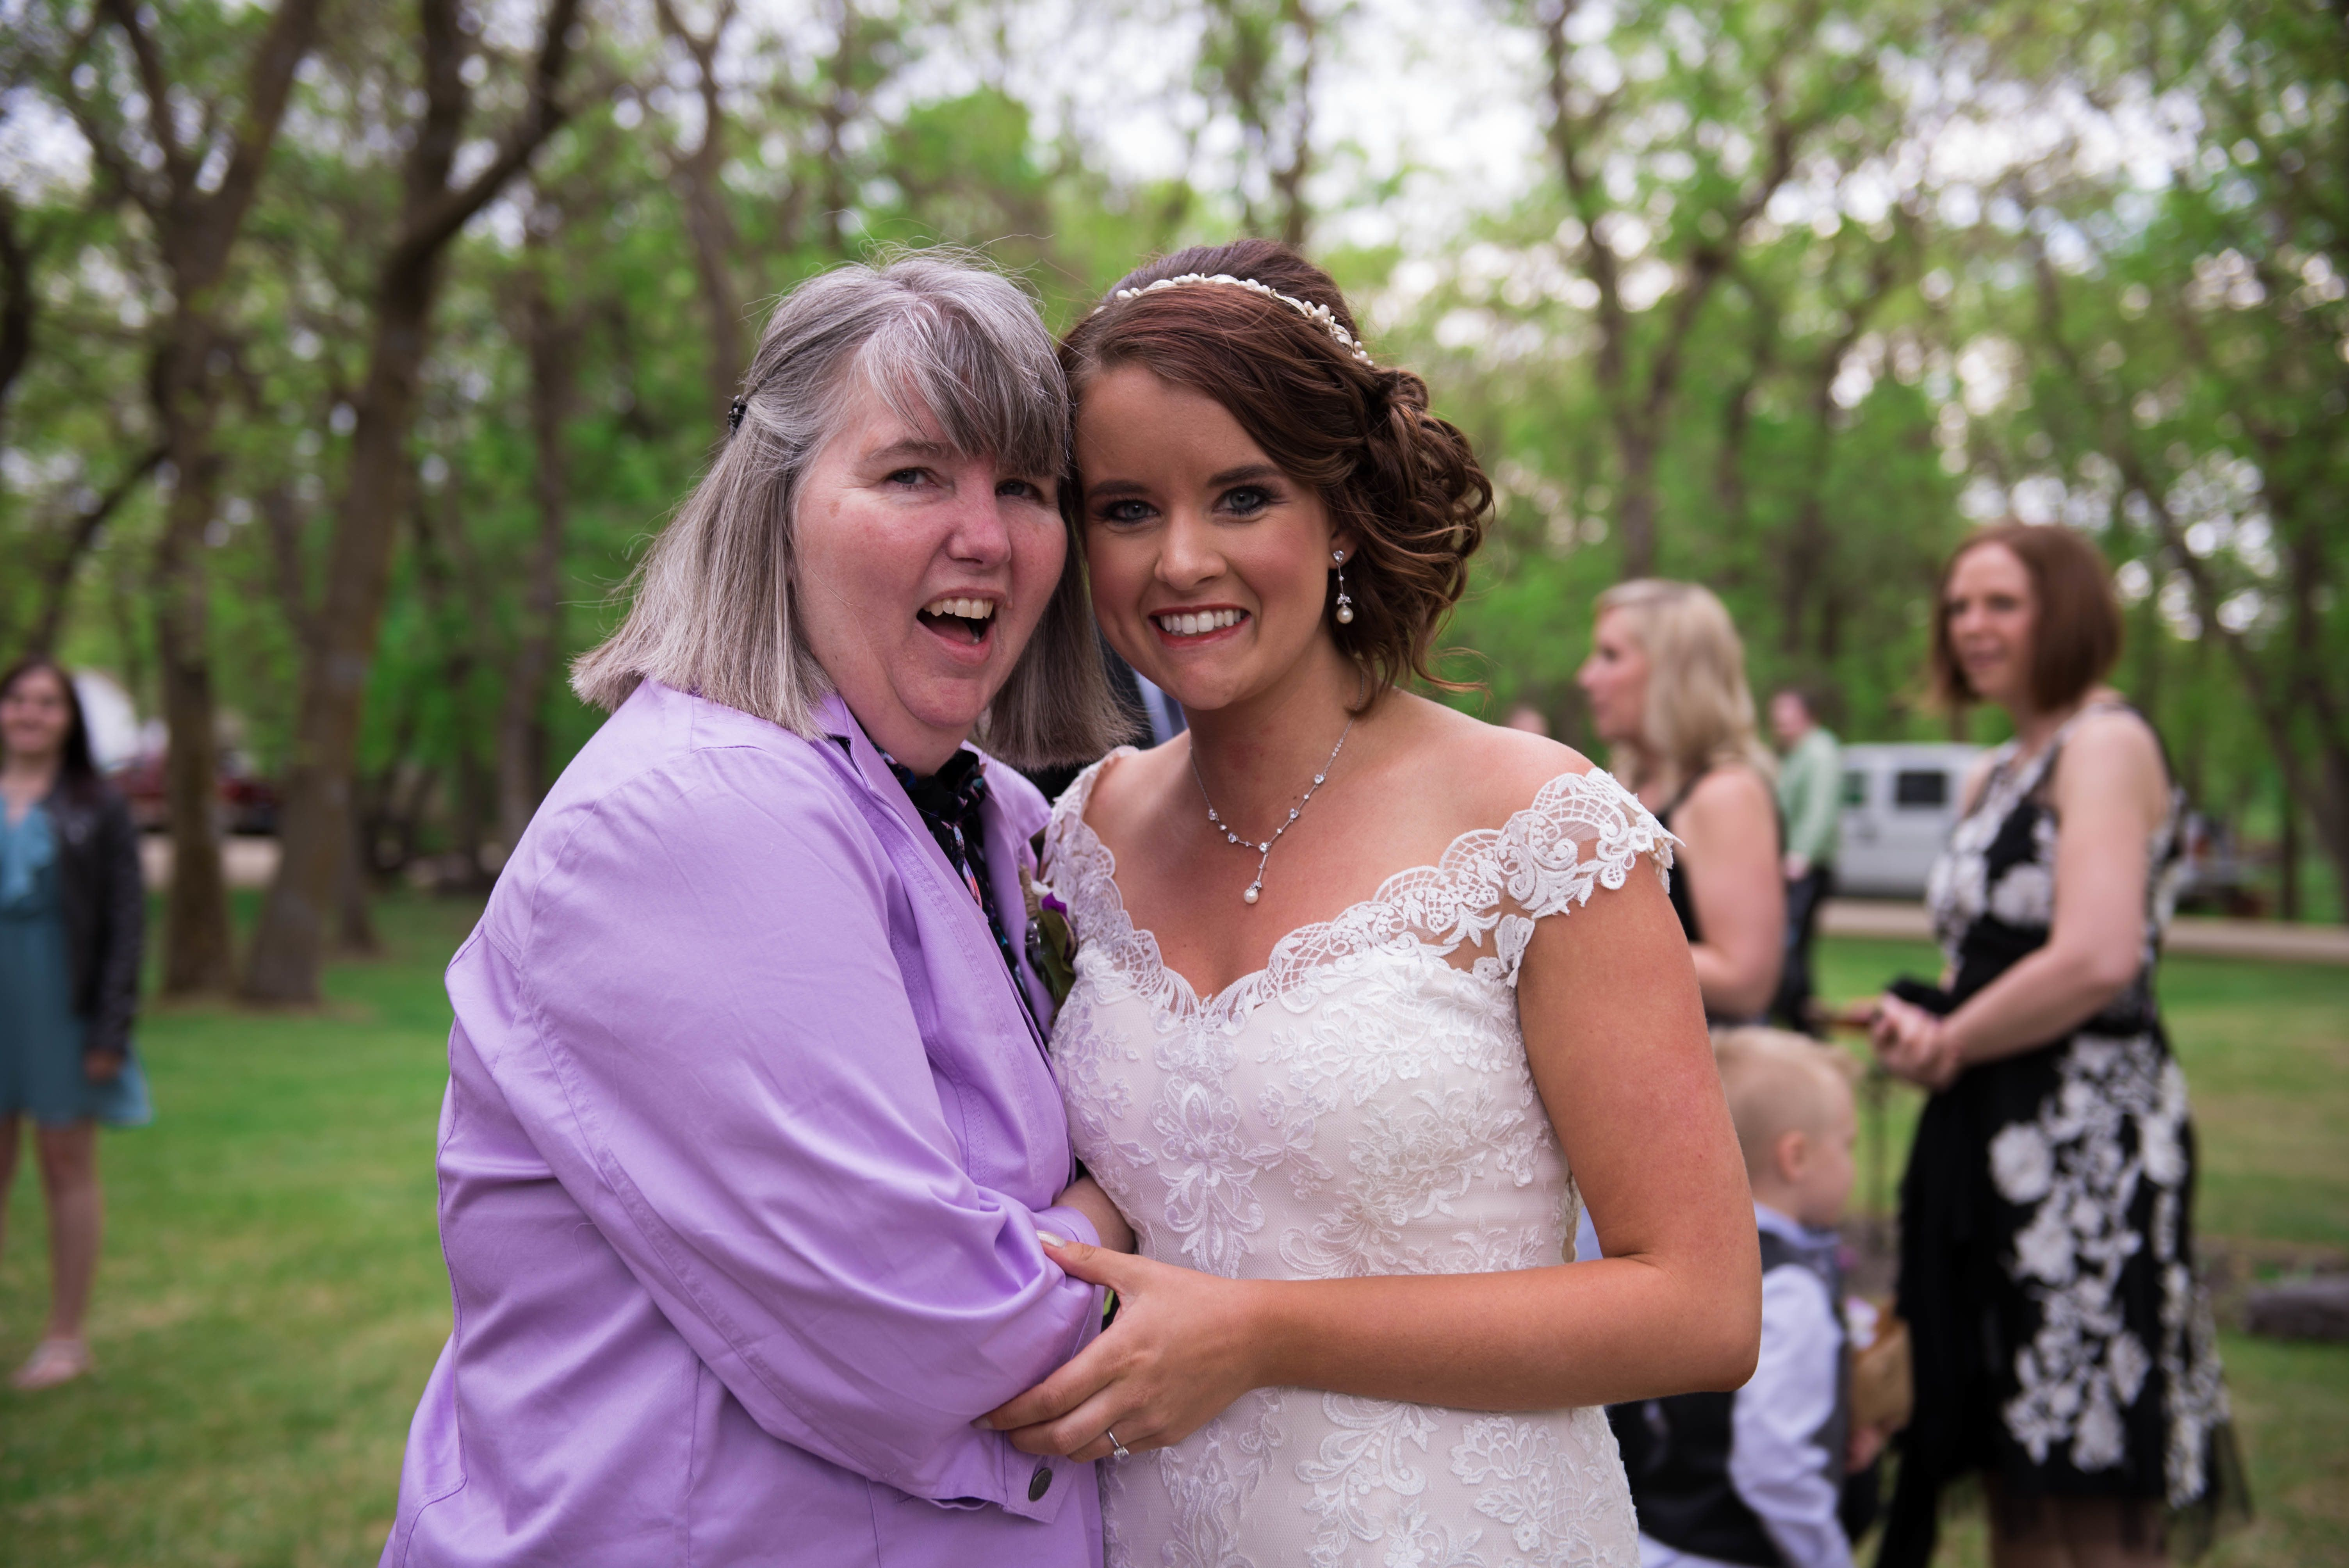 Stephanie Gefroh poses with her mom on her wedding day.